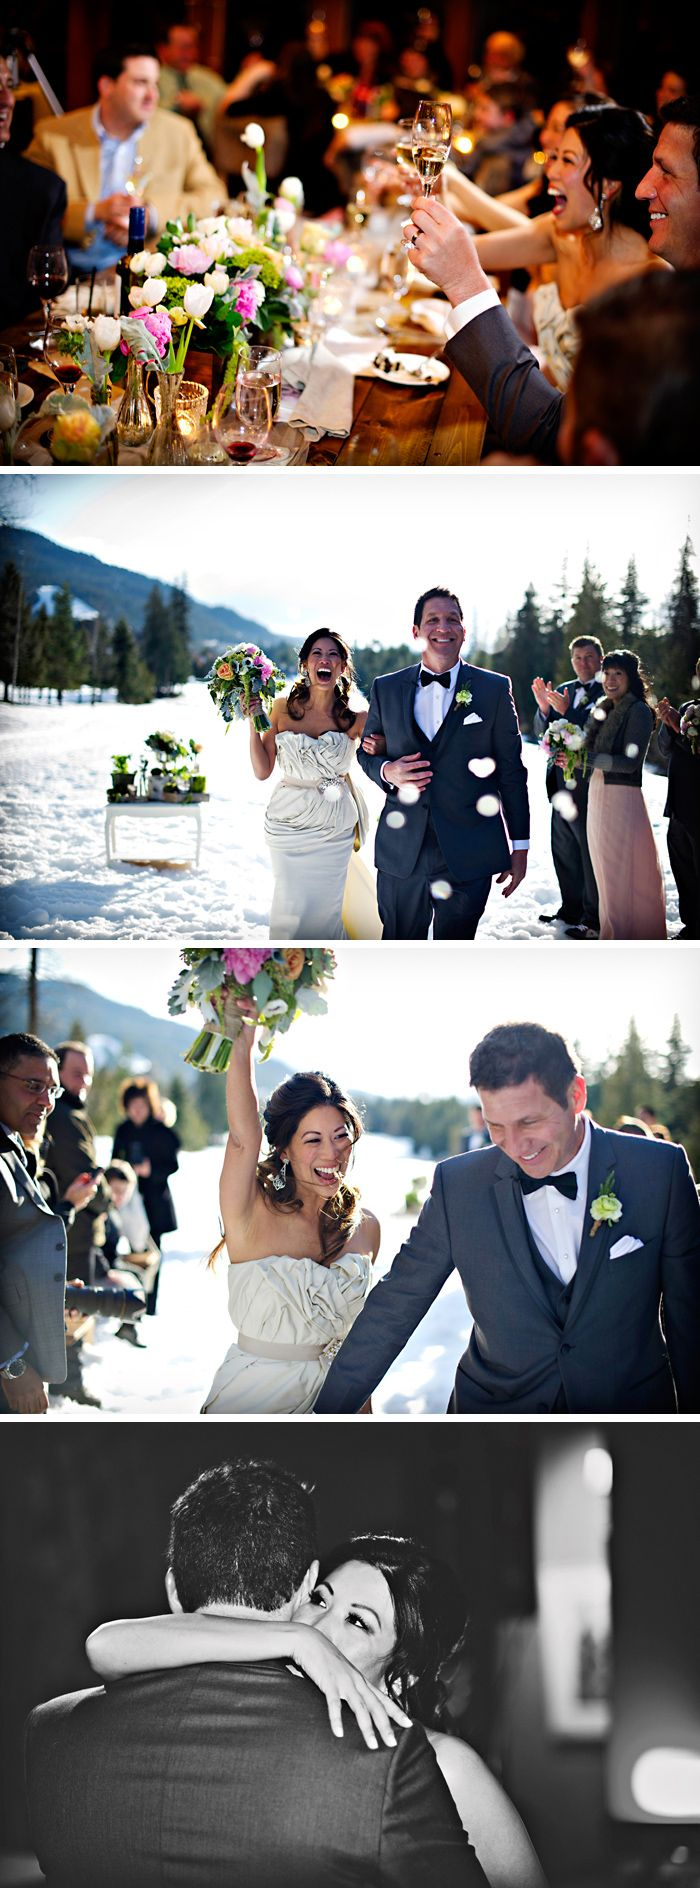 weddings in the snow